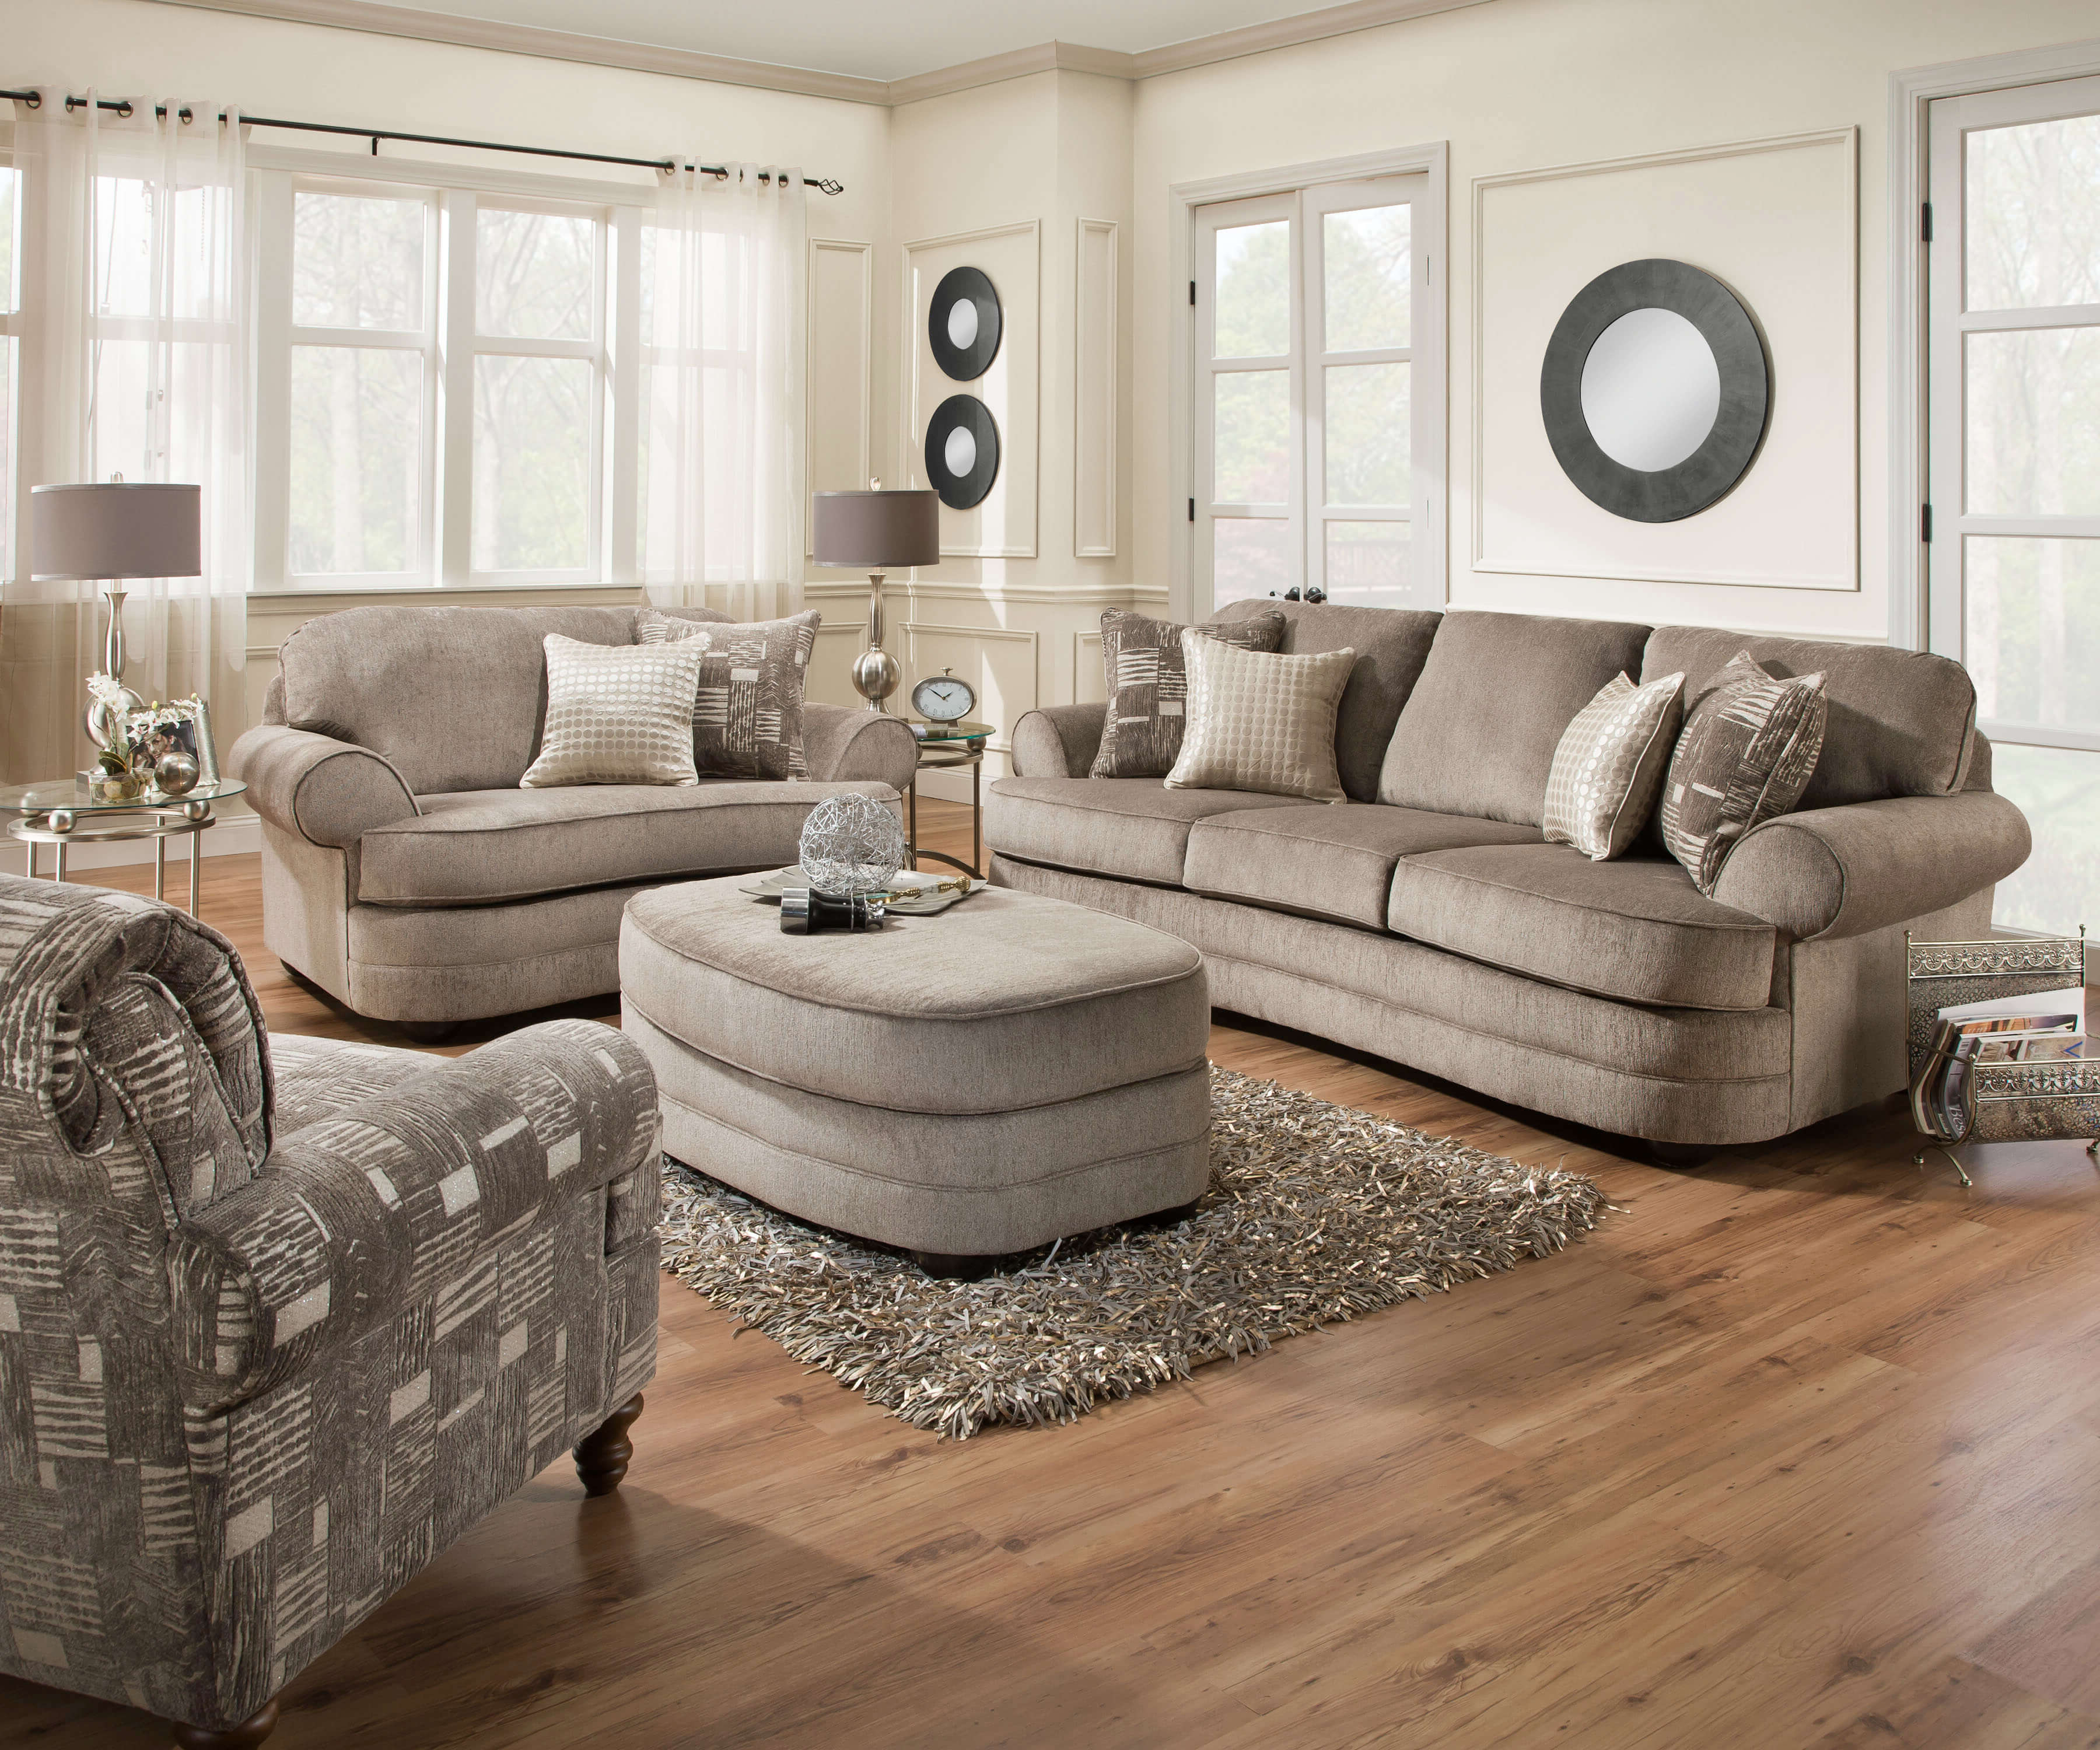 Well Known Sofa And Chair Set Throughout Kingsley Pewter Sofa, Chair 1/2, And Ottoman Setsimmons (View 18 of 20)